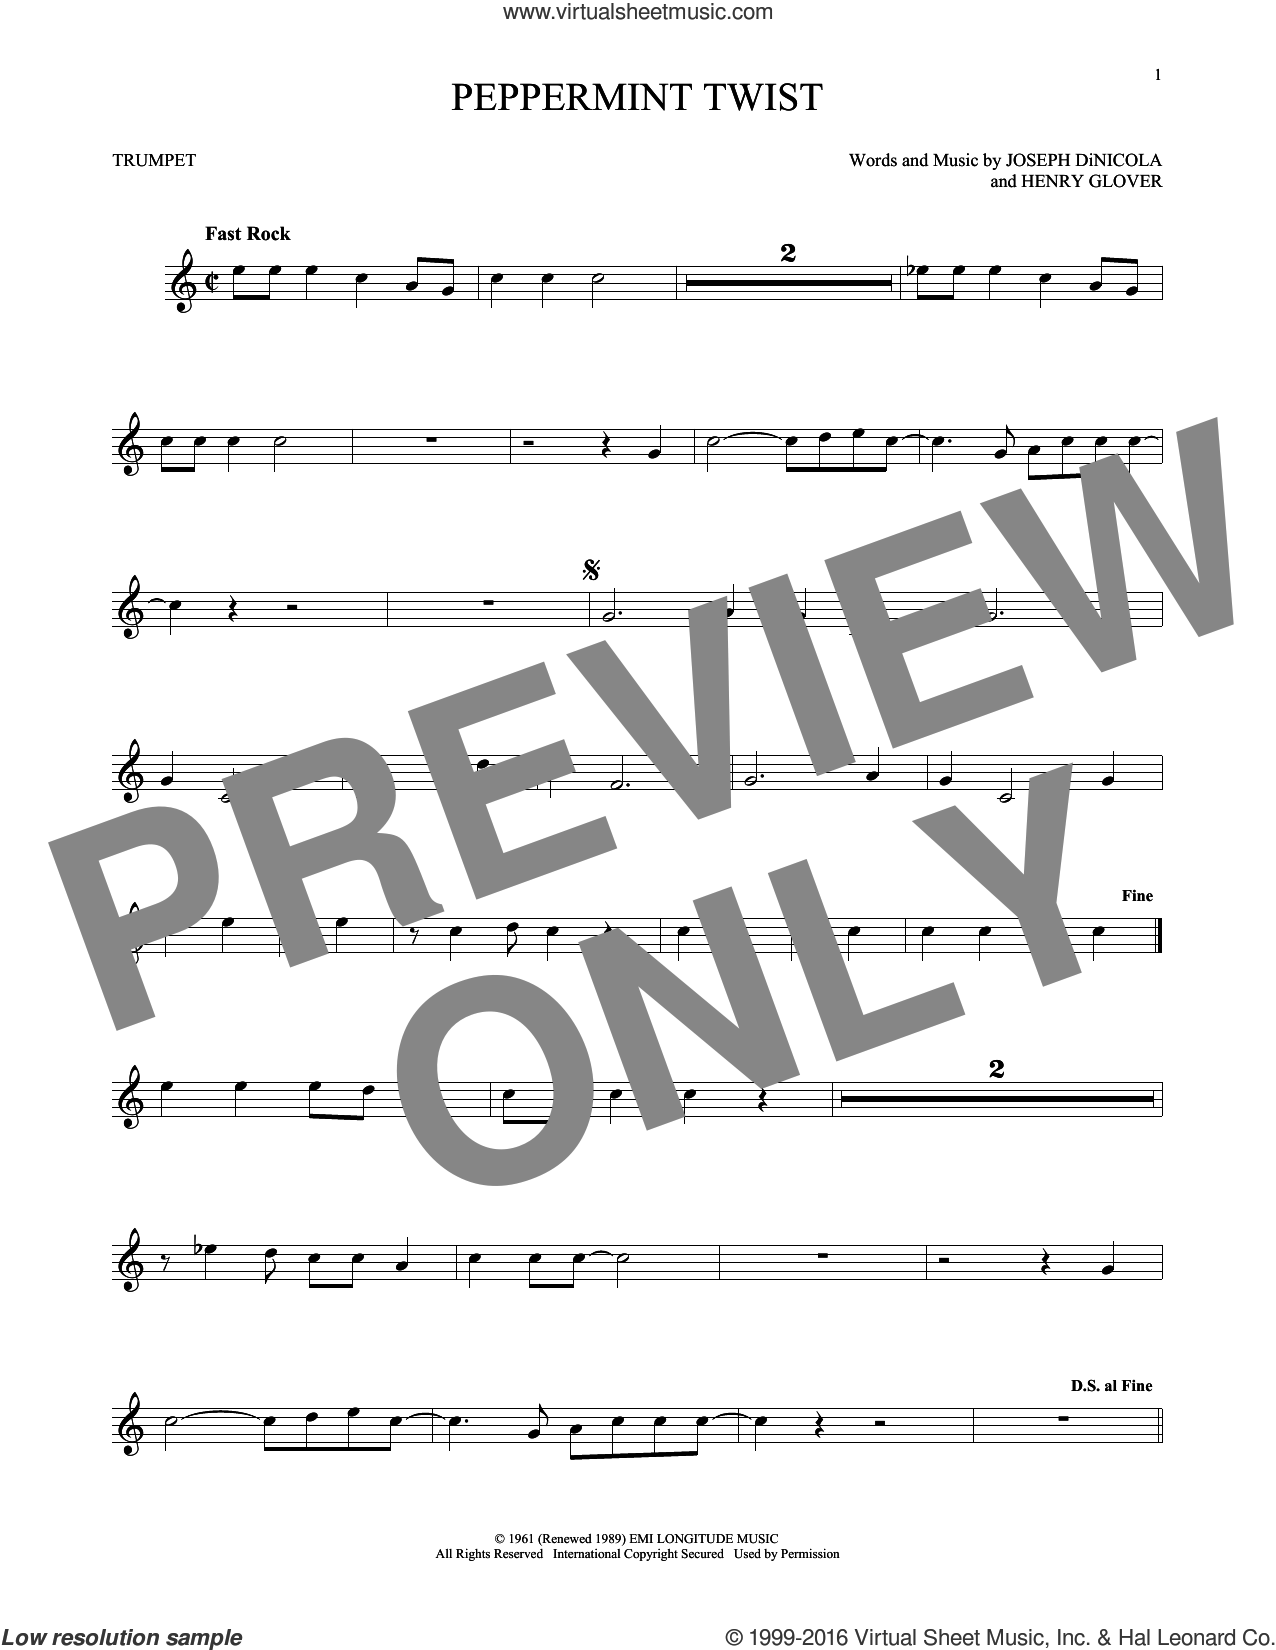 Peppermint Twist sheet music for trumpet solo by Joey Dee & The Starliters, Henry Glover and Joseph DiNicola, intermediate skill level